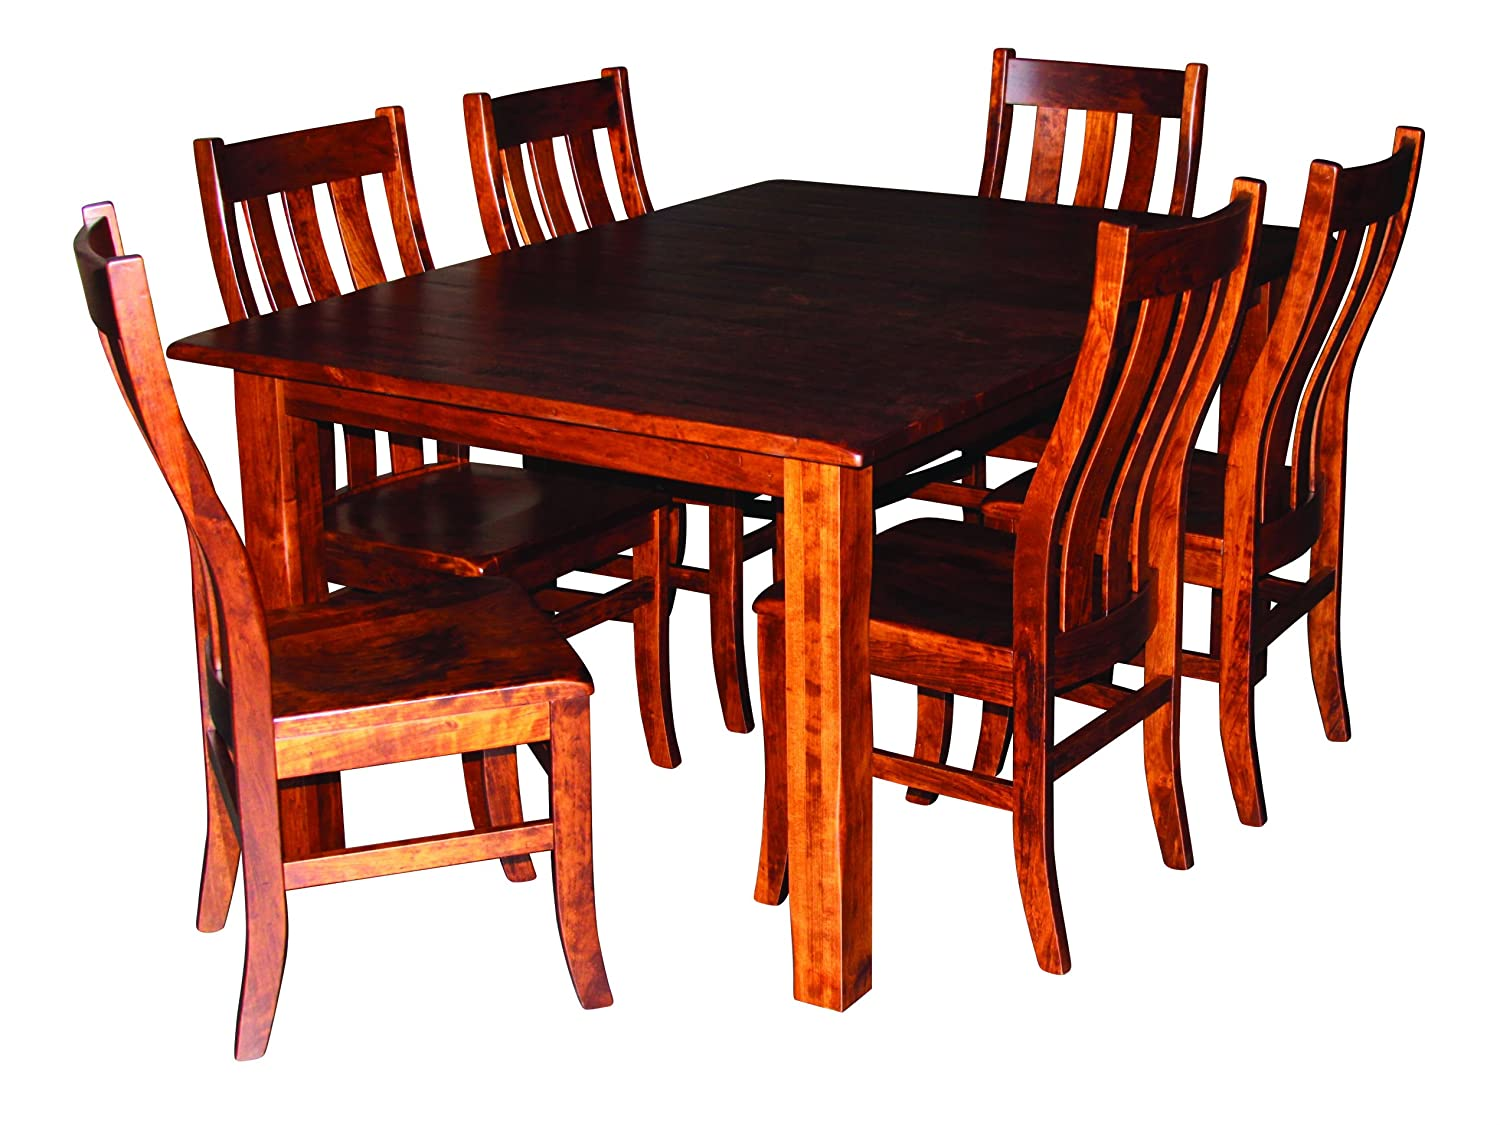 Amazon.com - CHERRY WOOD Dining Room Table Set for 8 ...